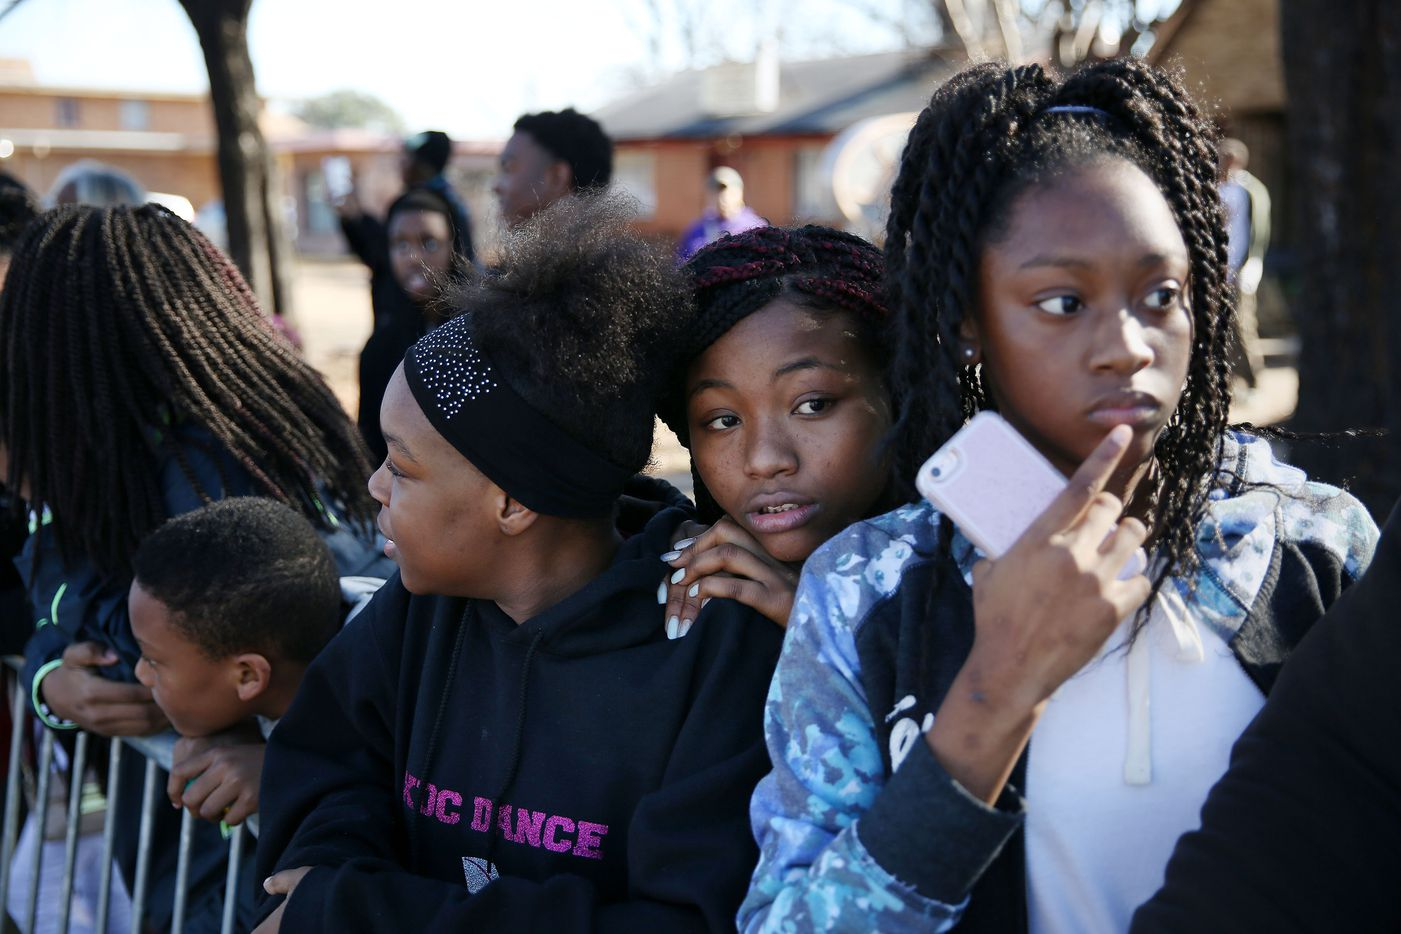 (From left) Angel Hardmon, 14, Samira Ahmed, 13, and Ashiree Walker, 13, watch the 35th Annual Dr. Martin Luther King, Jr. Birthday Celebration parade.